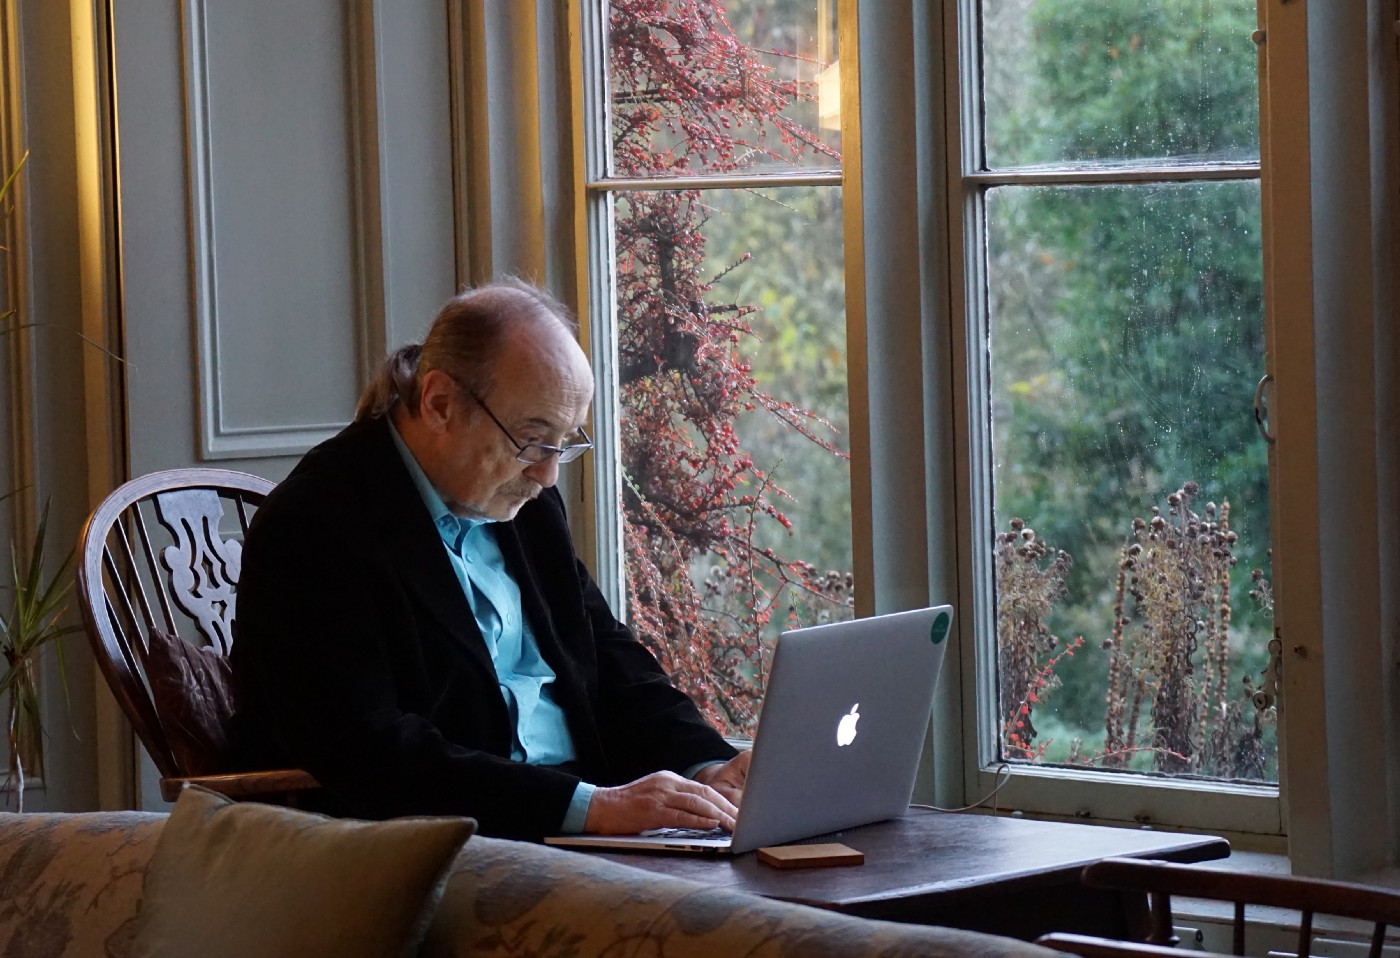 An elderly man using a Macbook